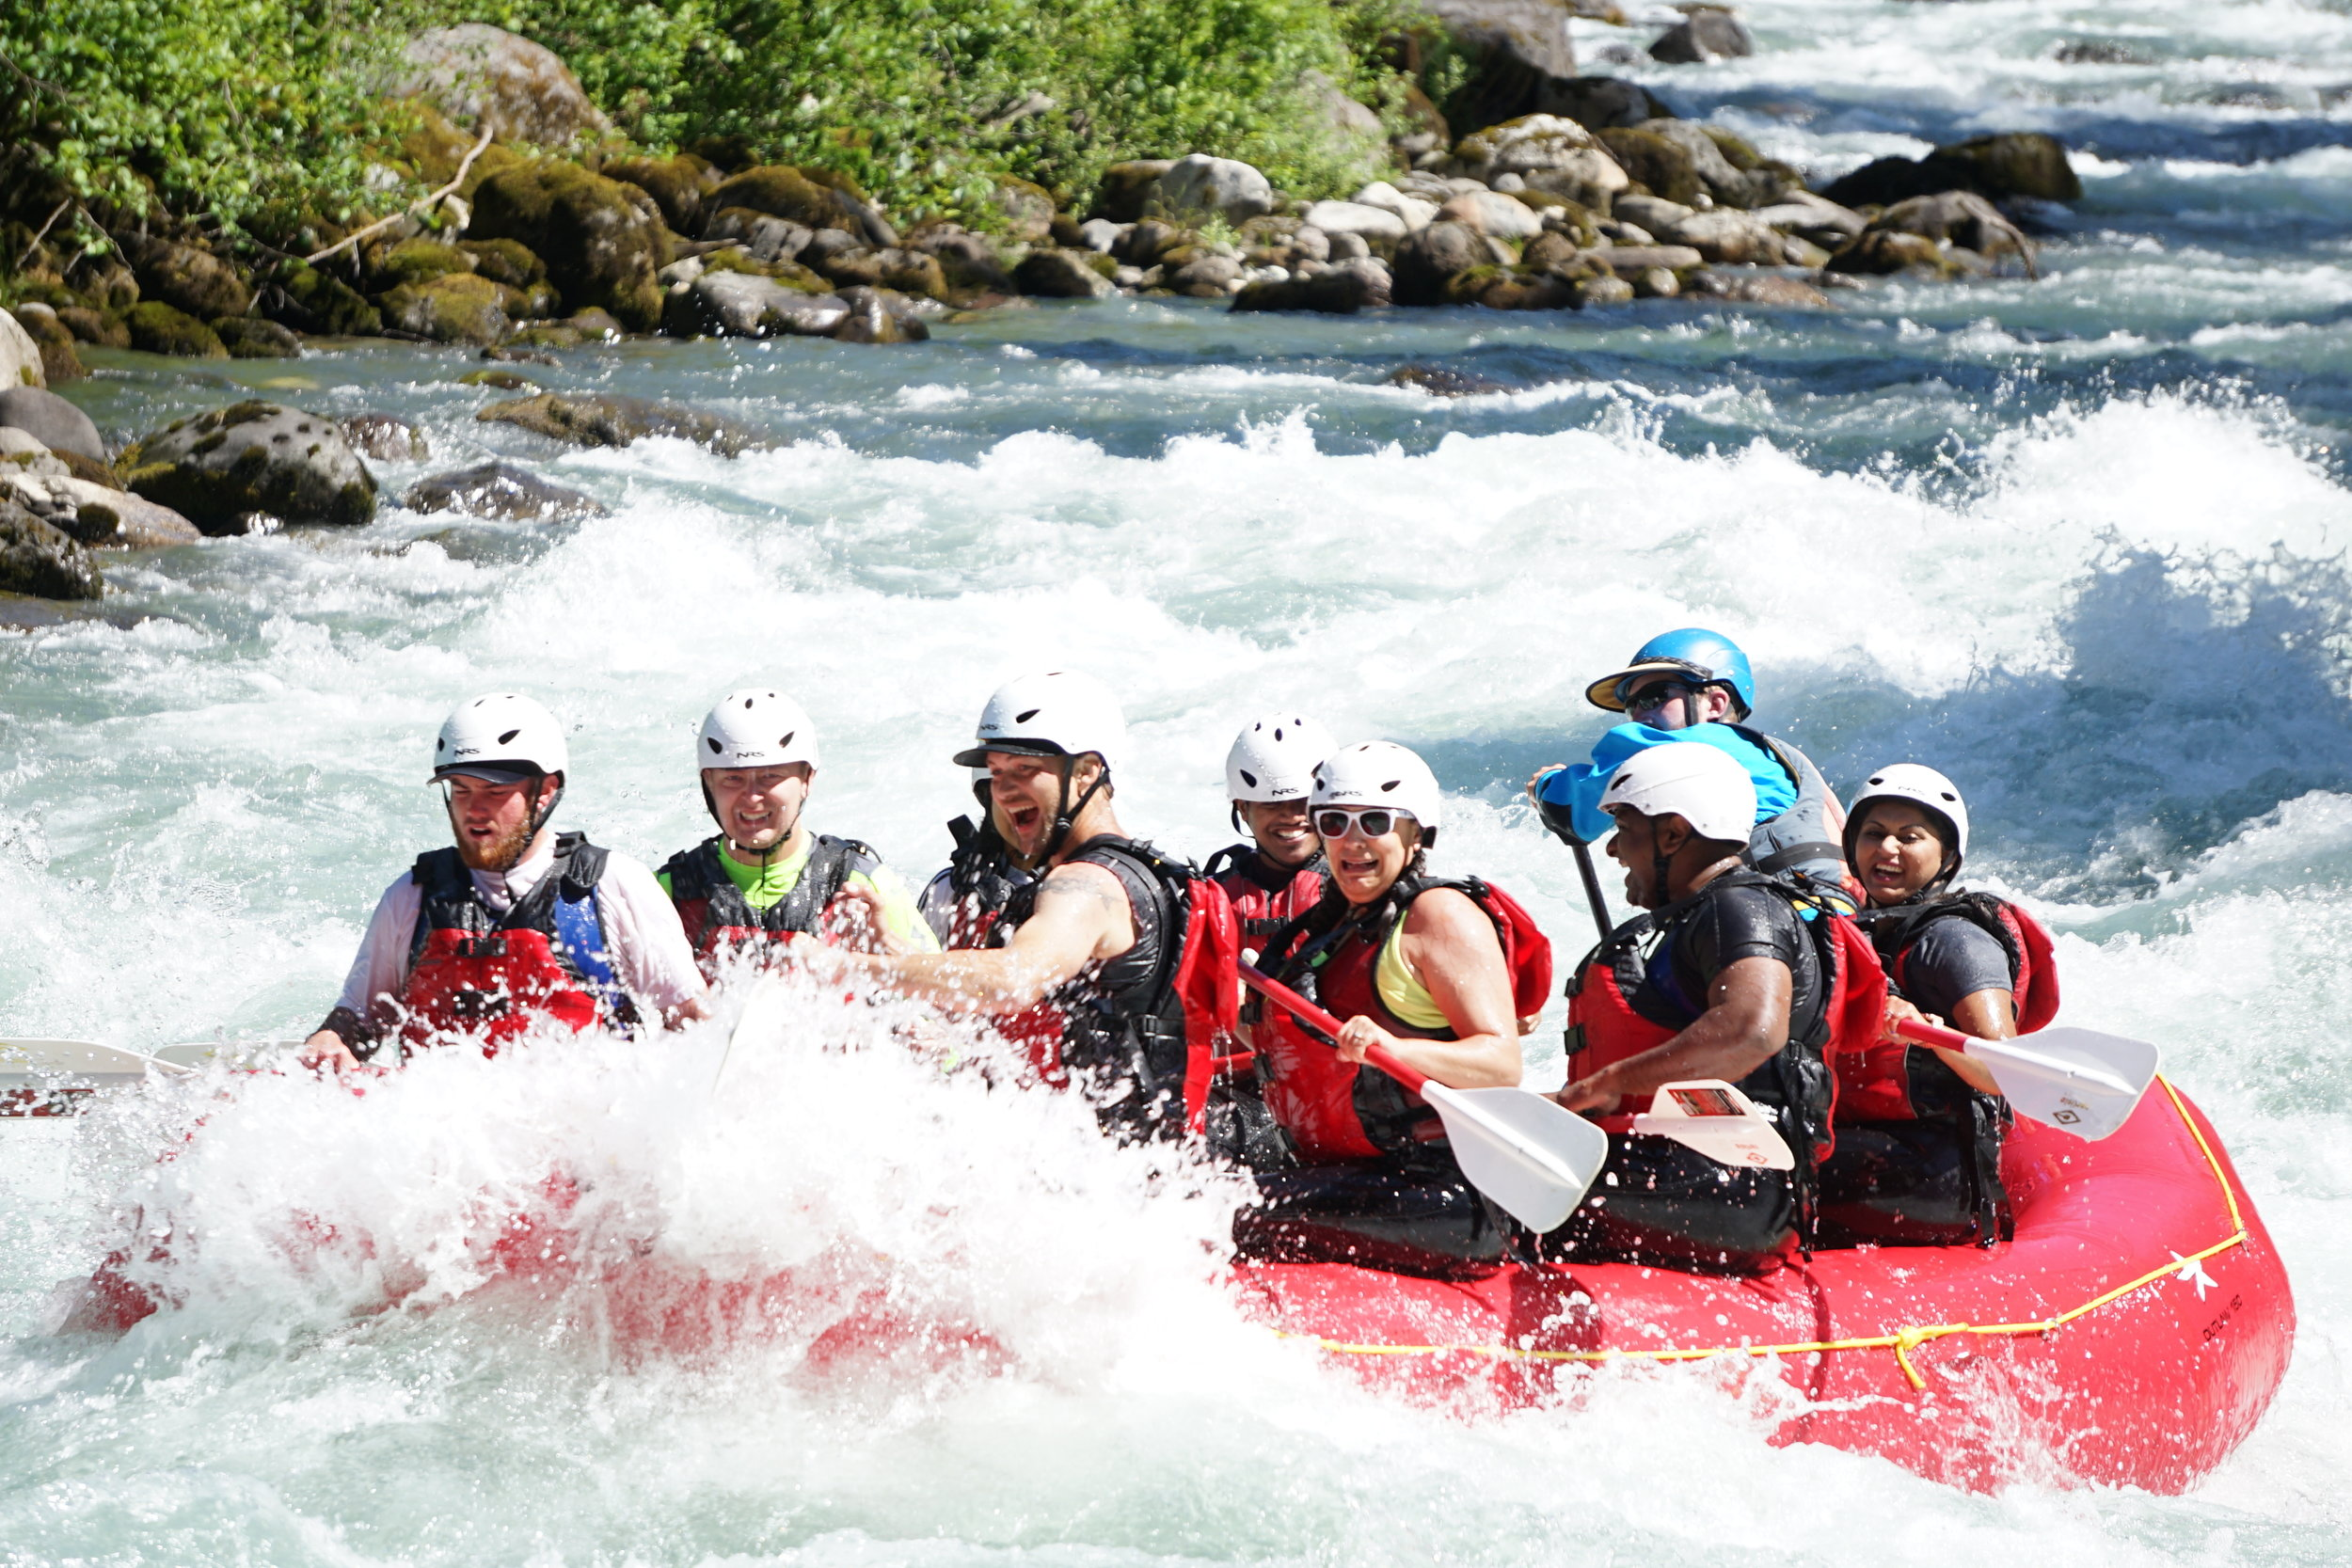 rafting darrington.JPG